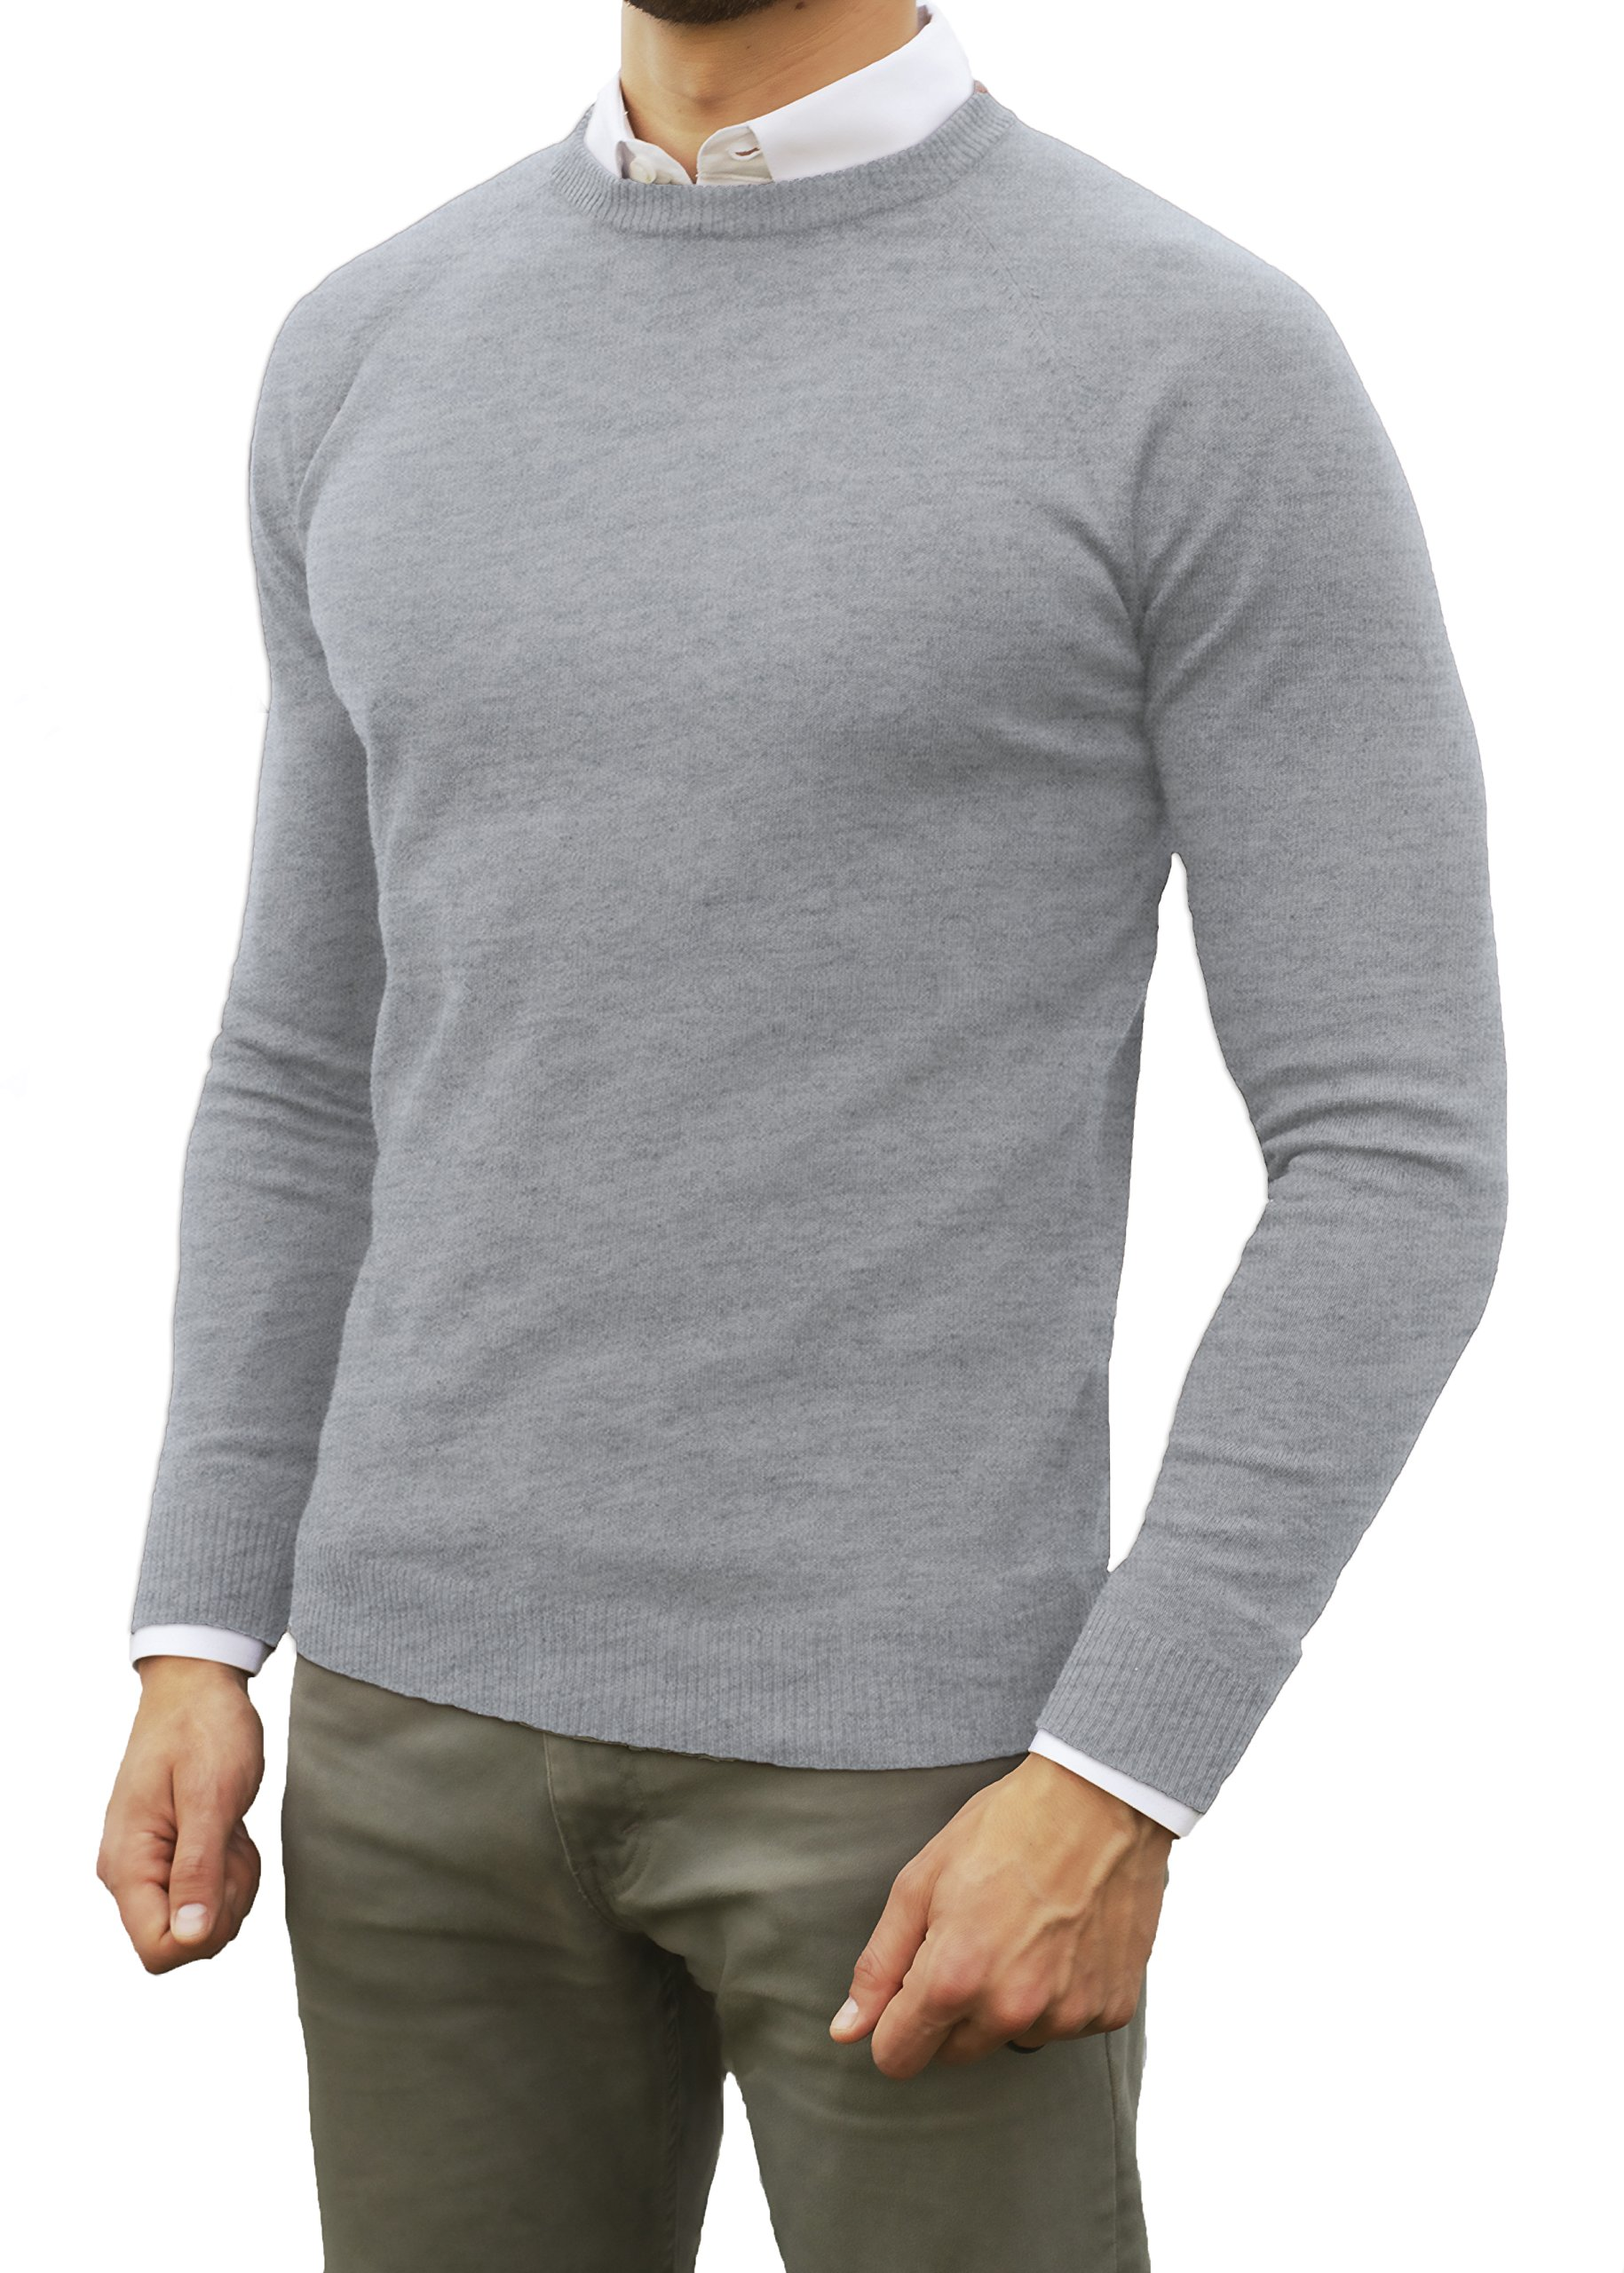 Comfortably Collared Men's Perfect Slim Fit Light Weight Crew Neck Pullover Sweater (Medium, Heather Grey)